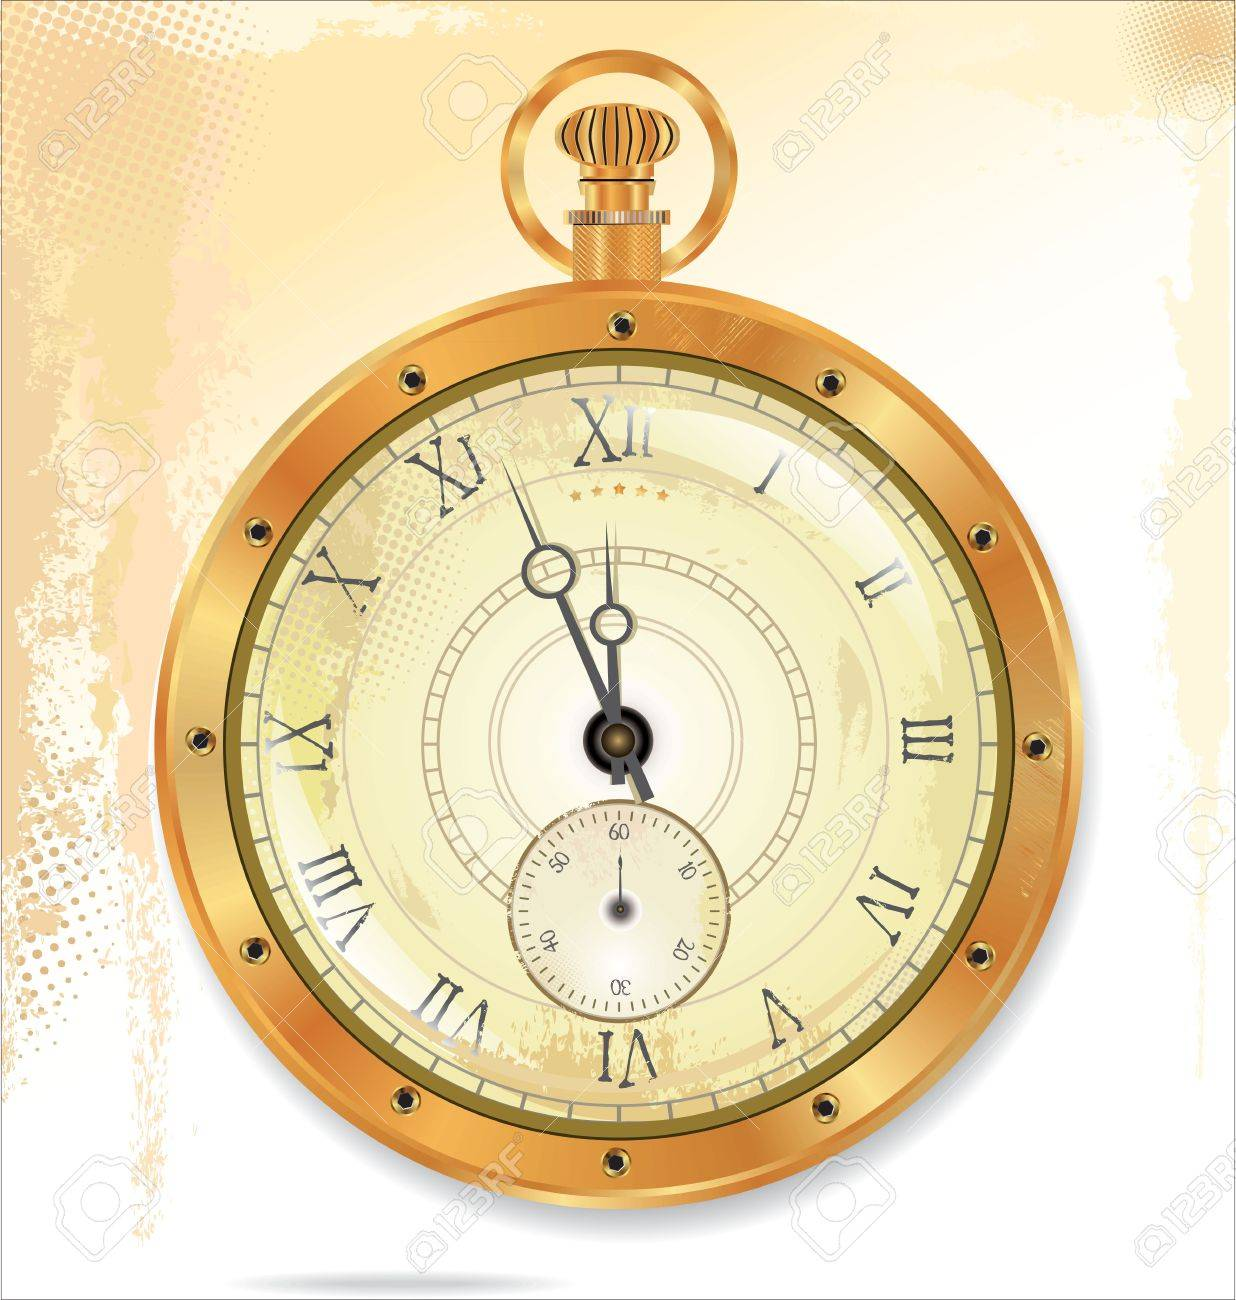 Old pocket gold watch detailed illustration  No transparency Stock Vector - 19083550